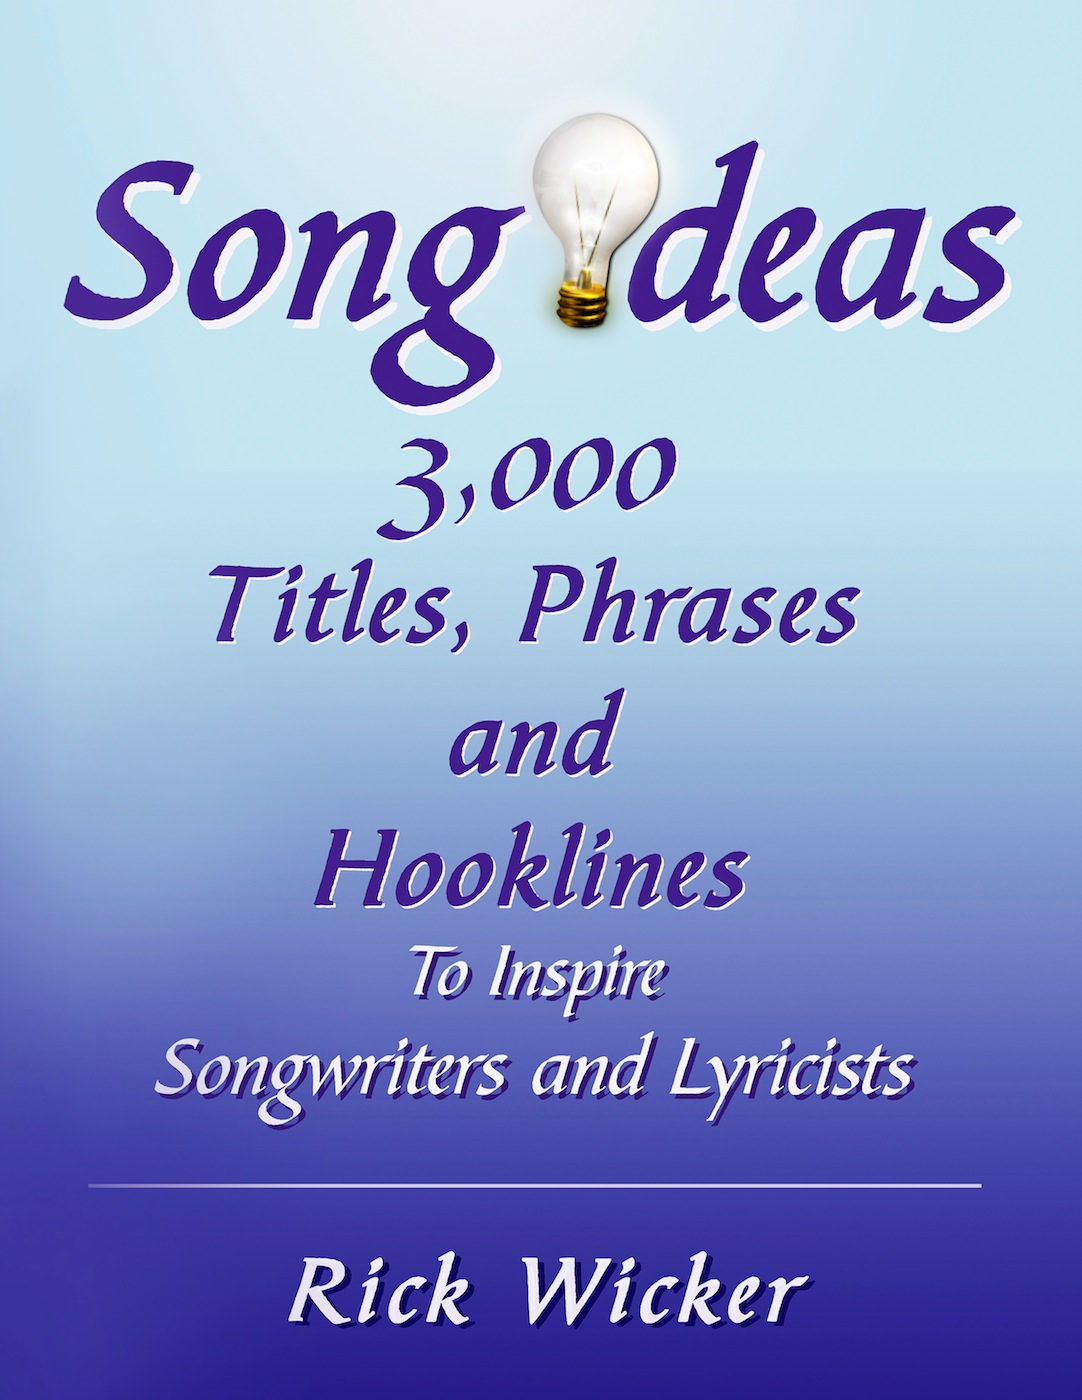 Song Ideas 3,000 Titles, Phrases and Hooklines: To Inspire Songwriters and Lyricists